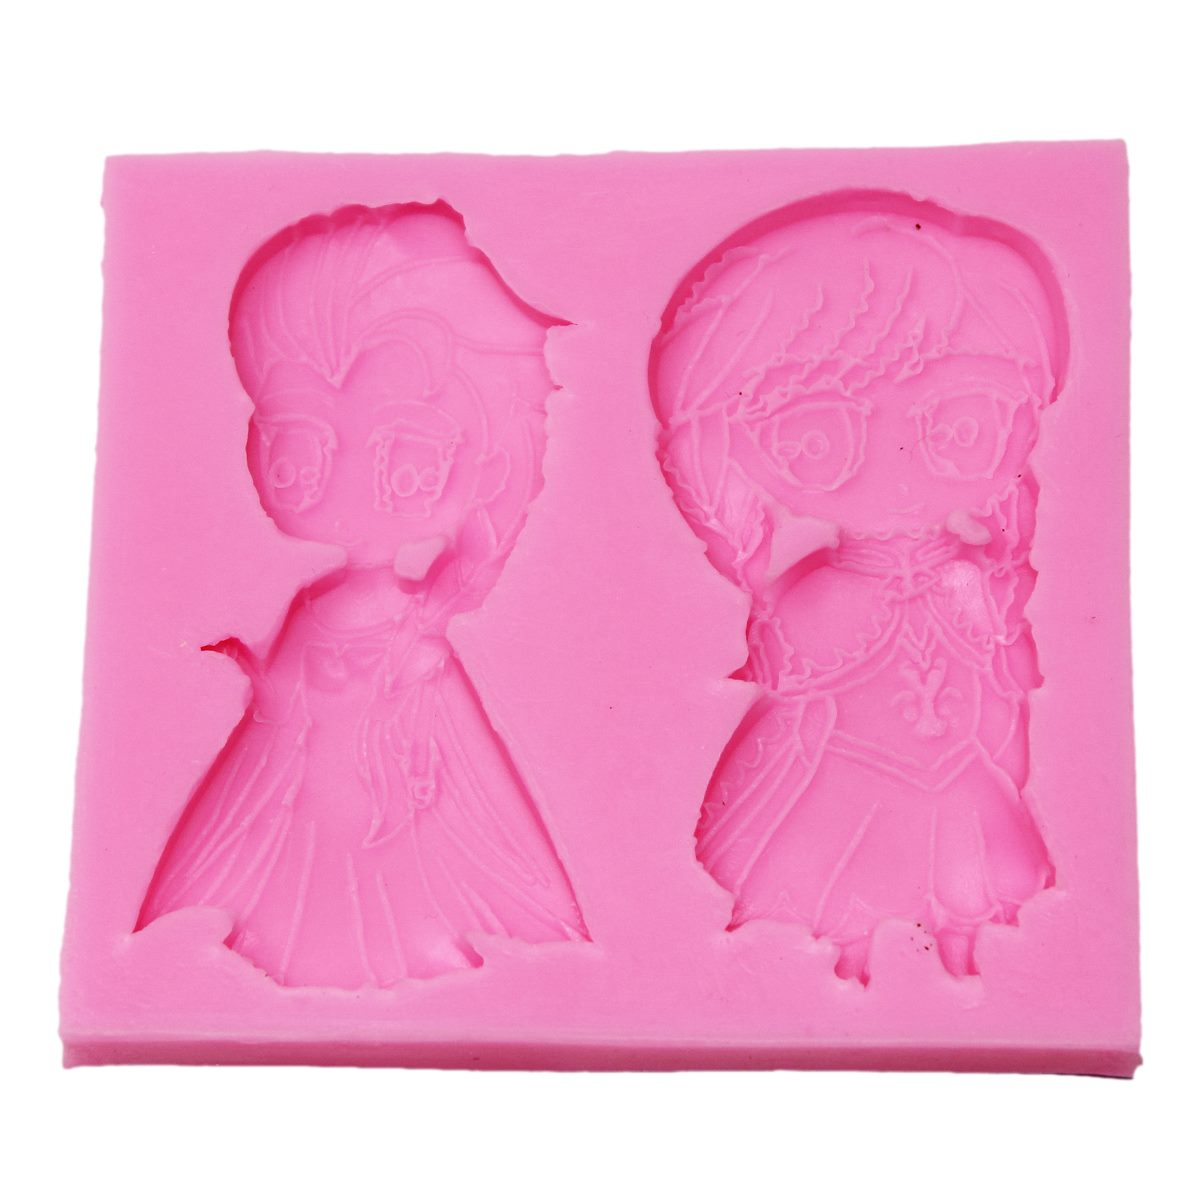 Resin Silicone Mould Animated Doll Design